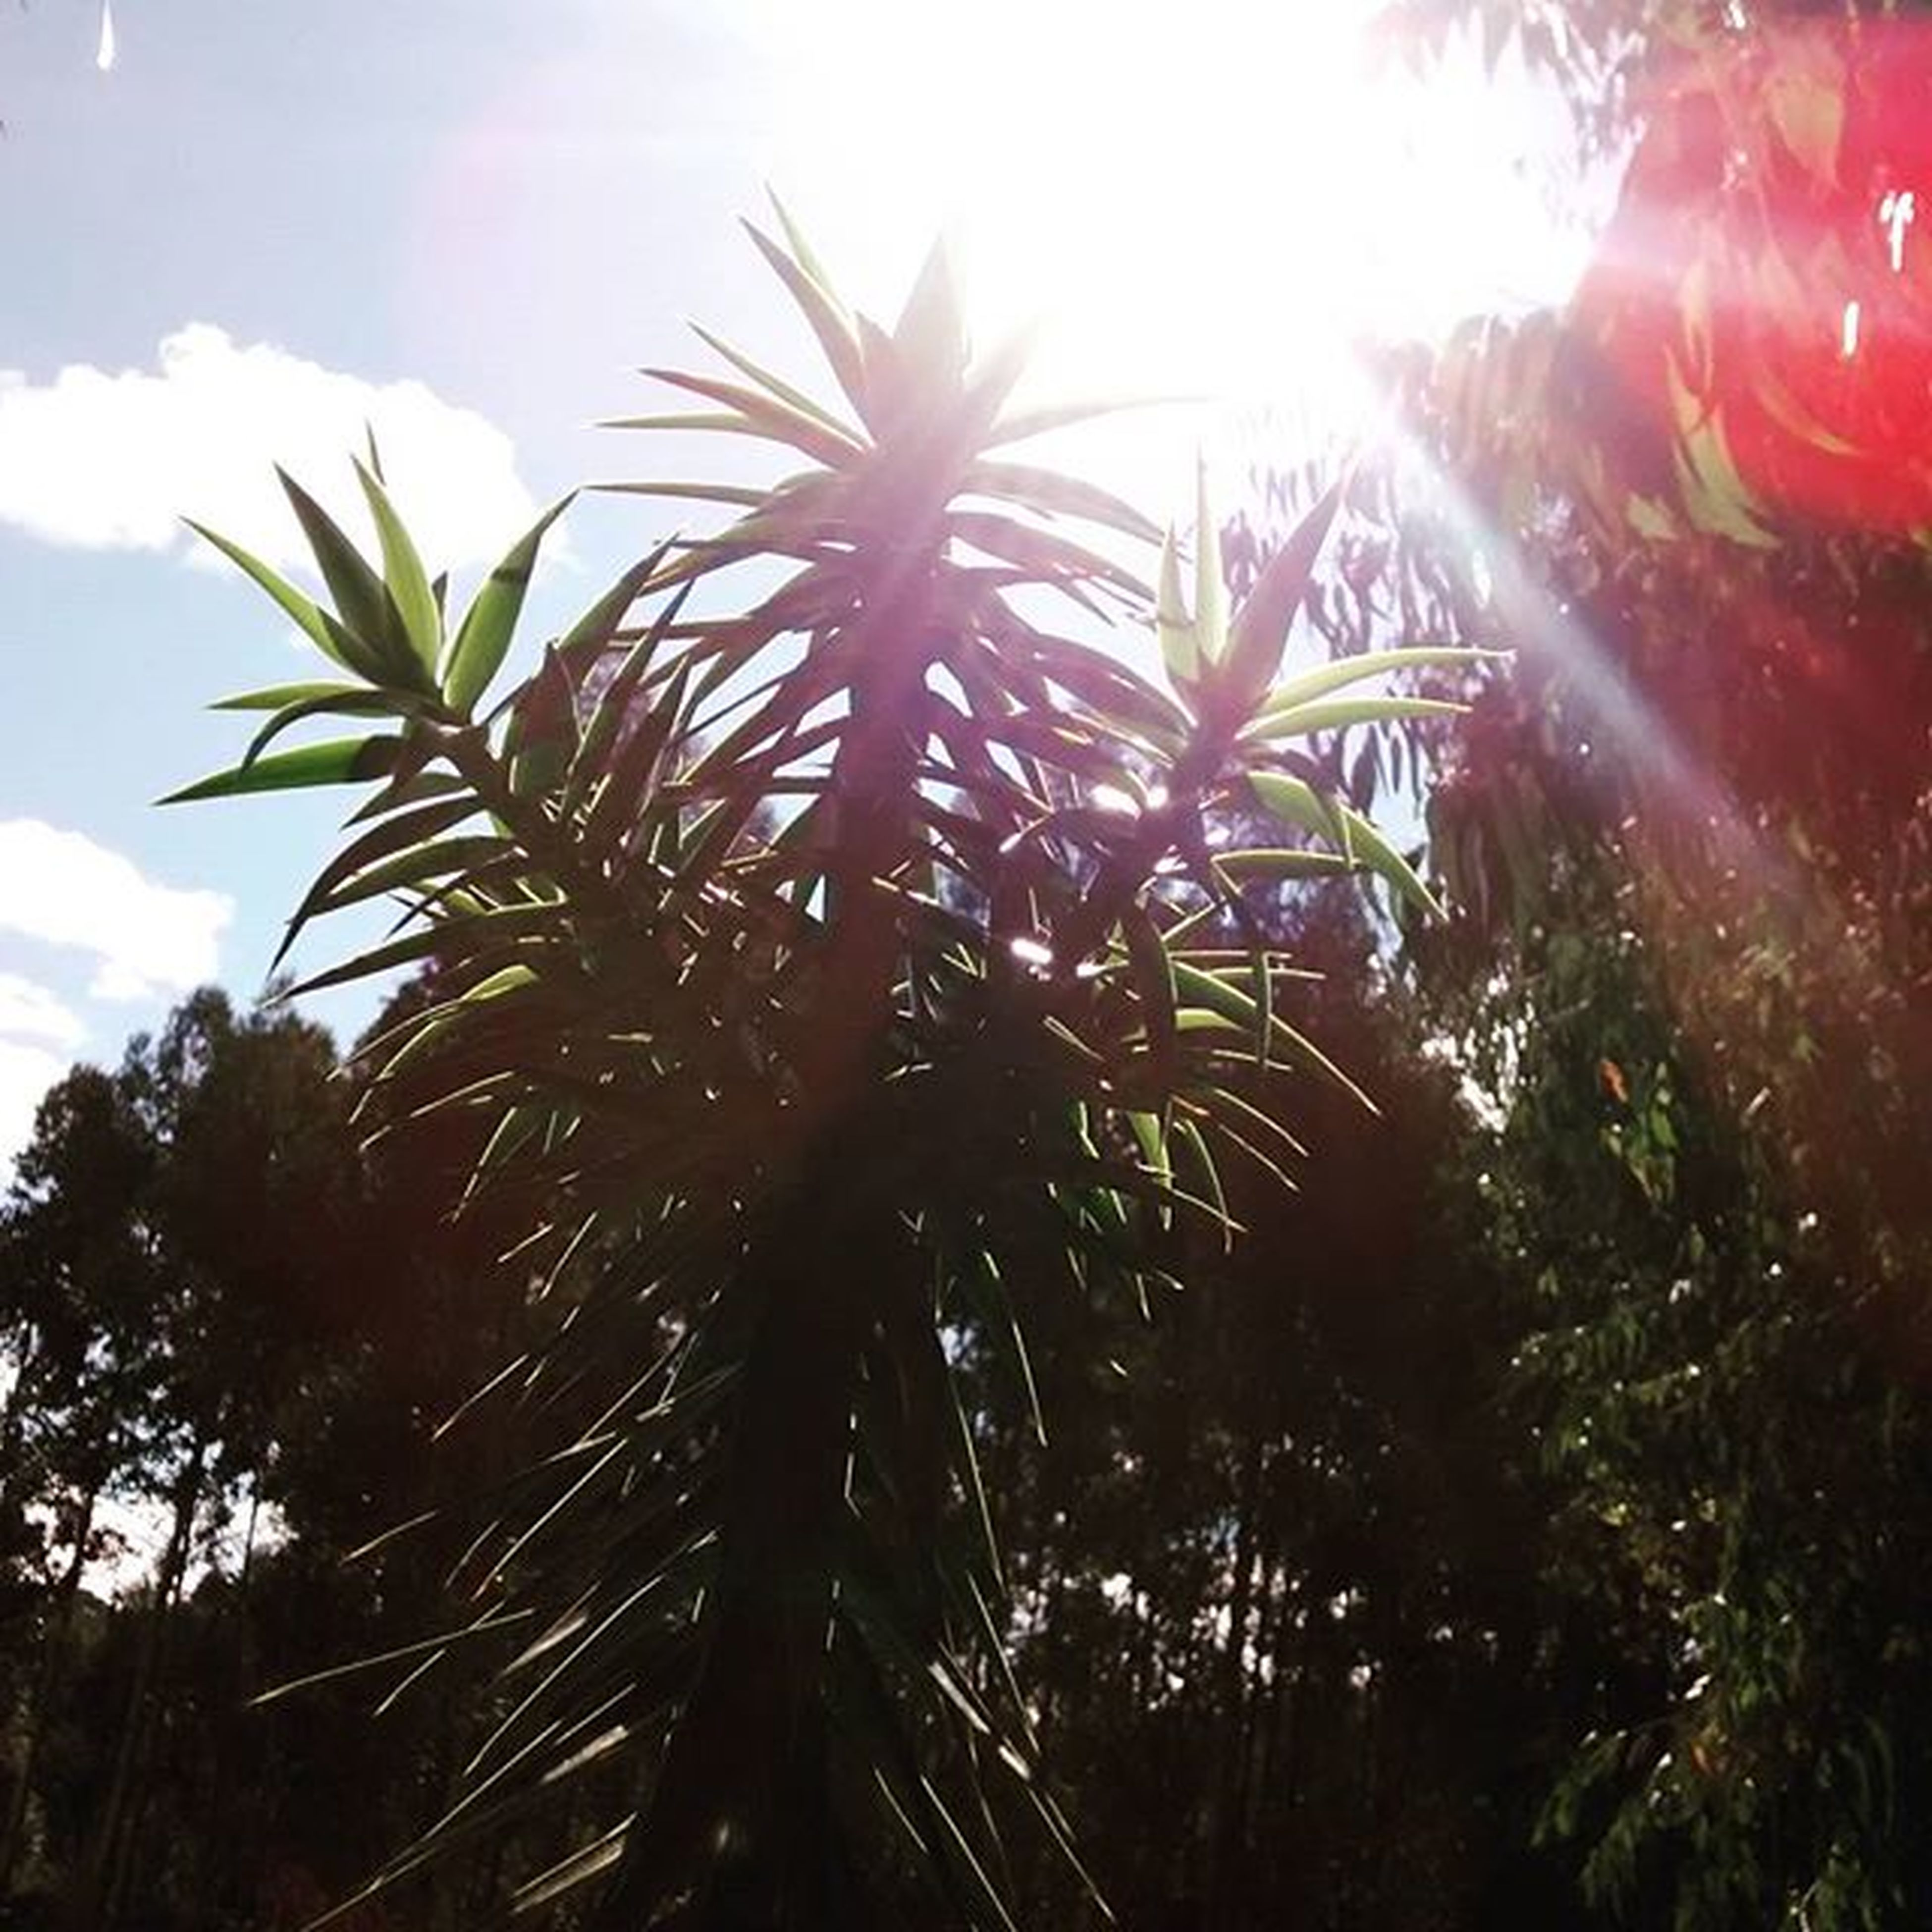 sun, sunbeam, lens flare, sunlight, tree, low angle view, growth, sky, nature, tranquility, sunny, bright, beauty in nature, day, leaf, no people, outdoors, tranquil scene, branch, plant